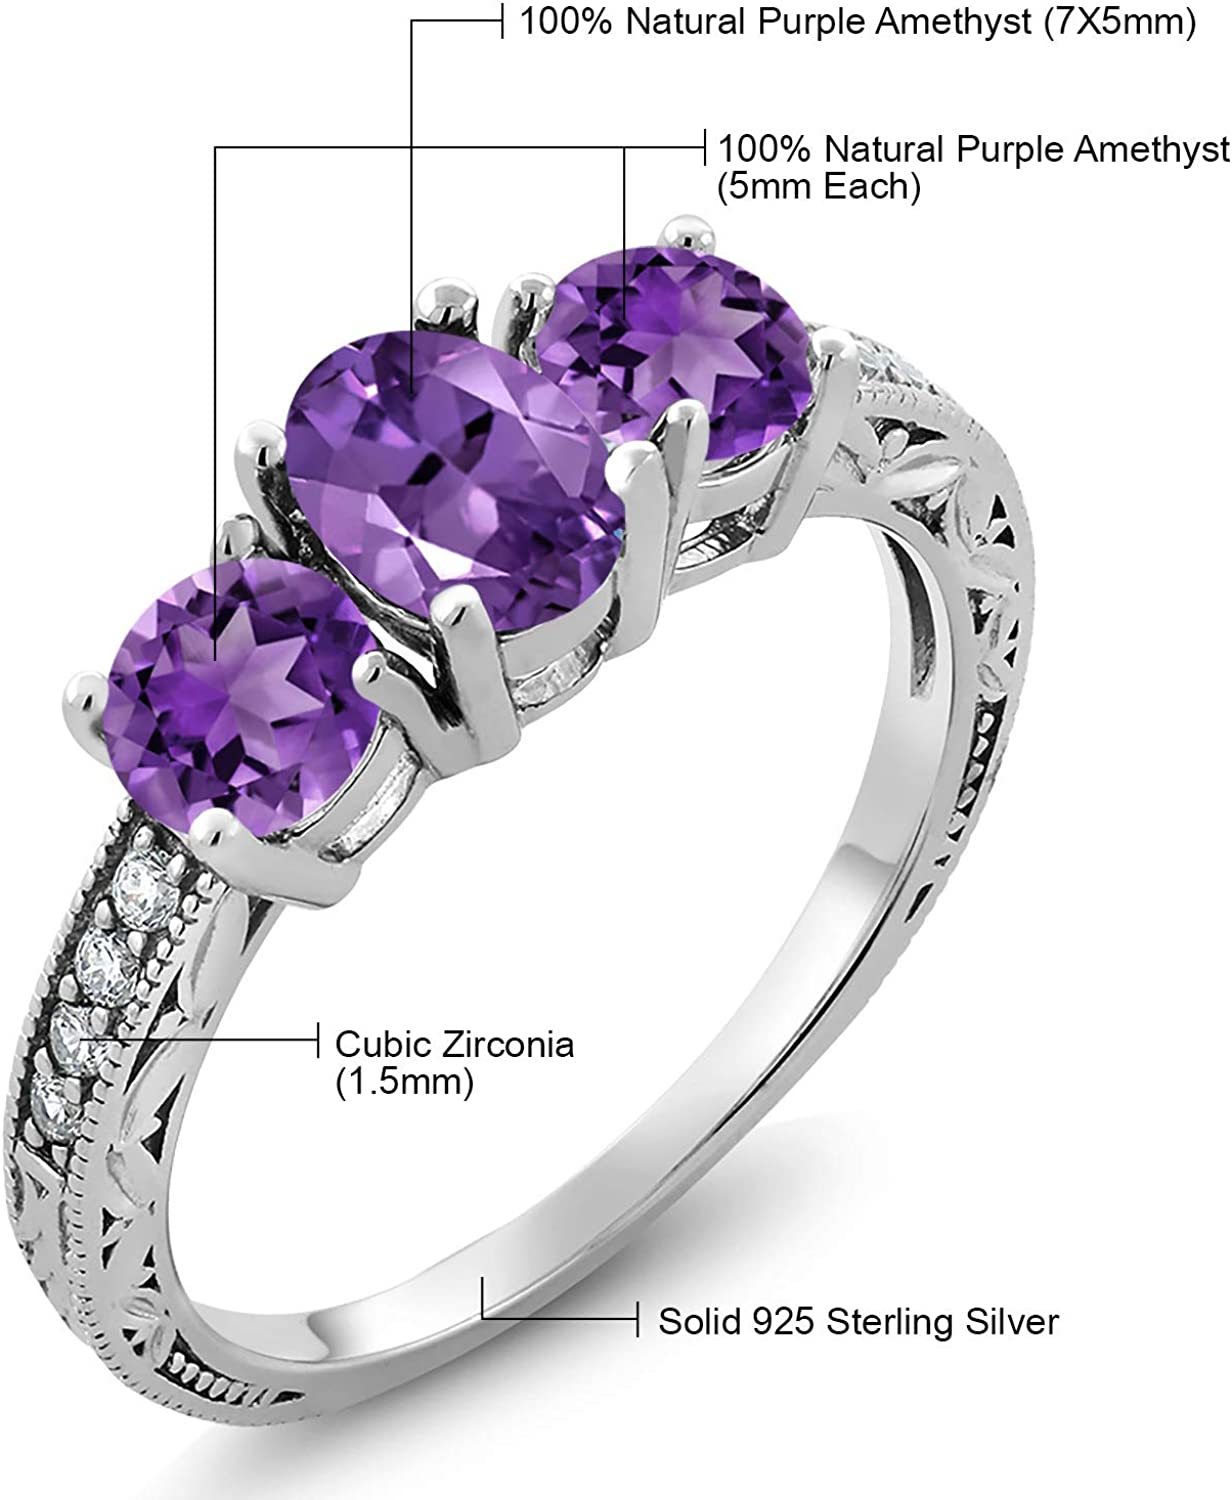 Clear CZ Round Wedding Ring New .925 Sterling Silver Princess Band Sizes 5-10